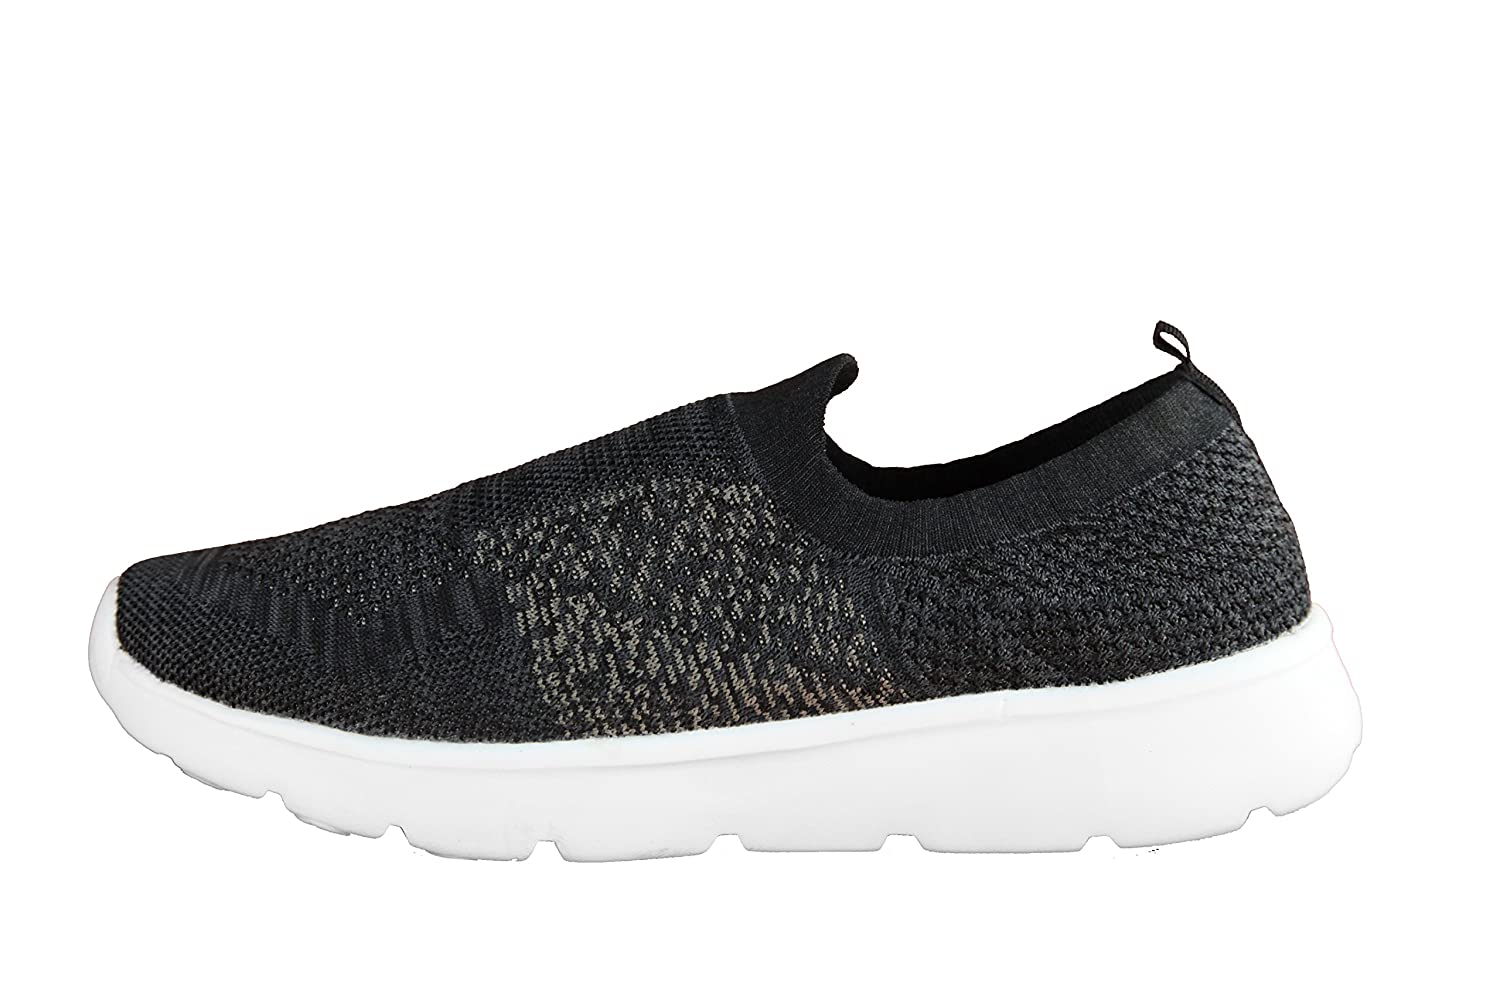 Silverletic Odorless Germ-free breathable shoes unisex light weight comfortable slip-on walking sneaker B0757HFZG6 10 D(M) US|Black